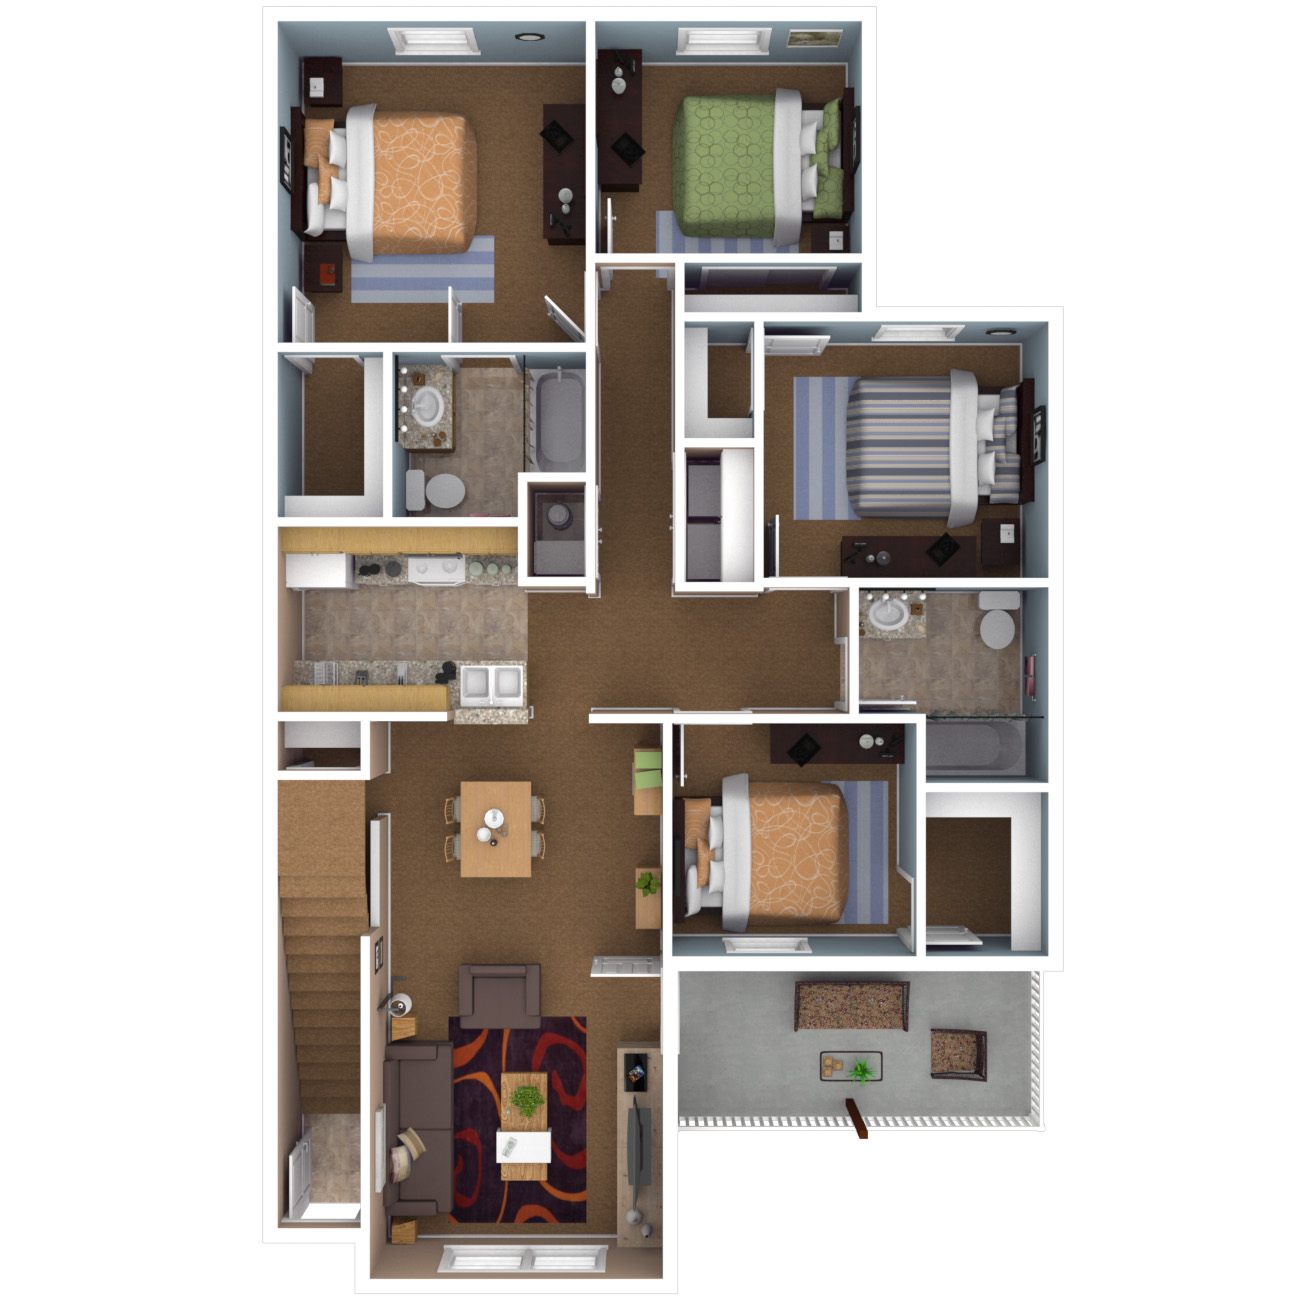 Apartment Floor Plans apartments in indianapolis | floor plans